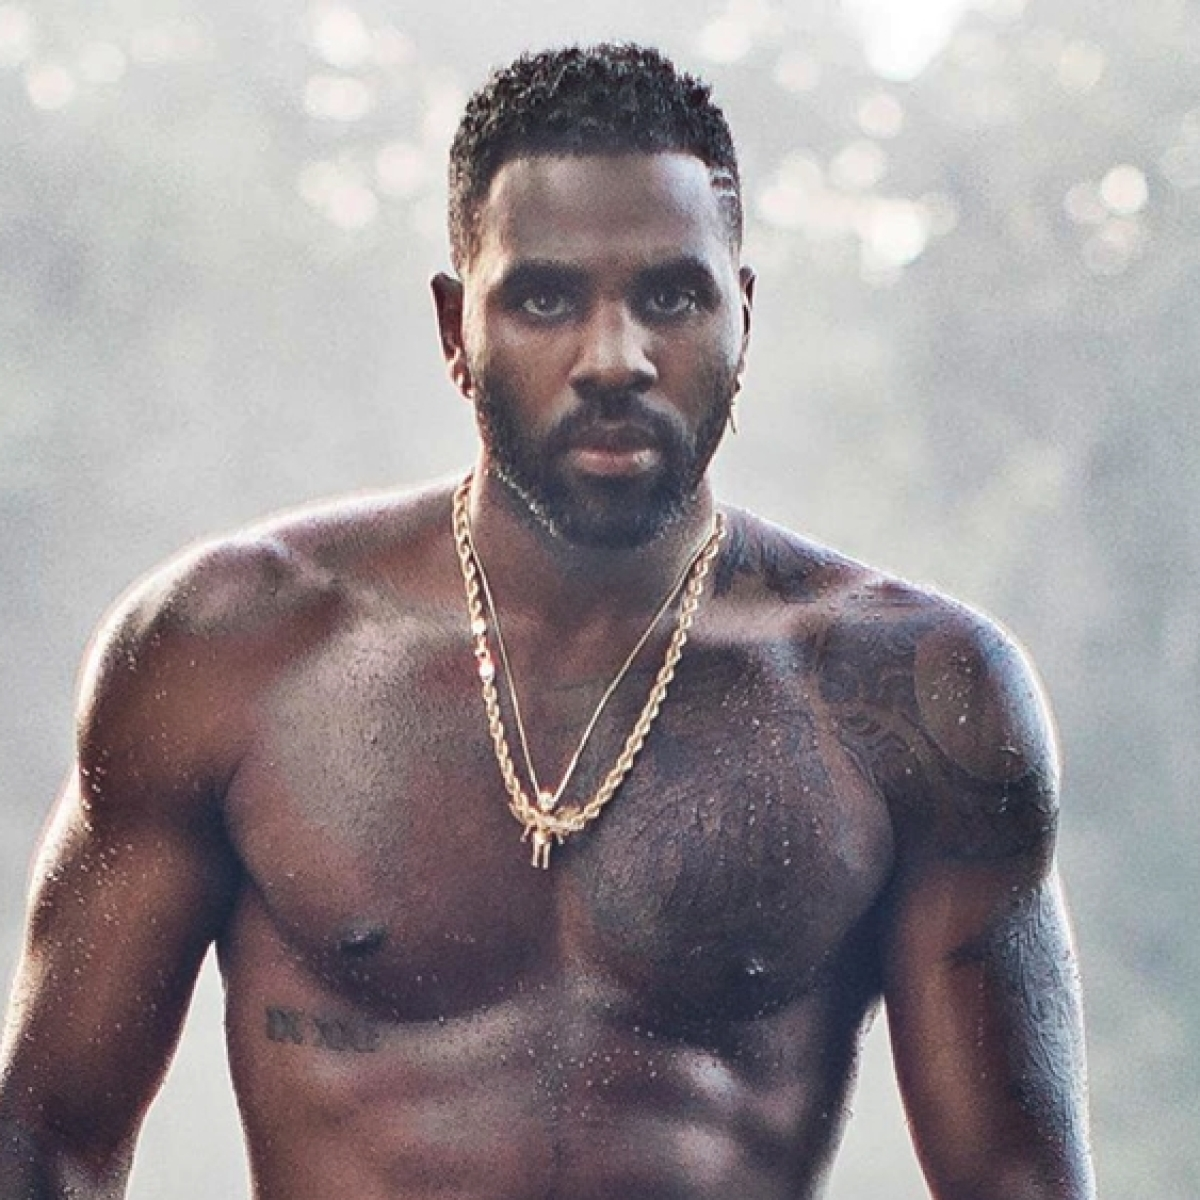 Jason Derulo wants more than Rs 3.5 cr to do porn after his 'anaconda' went viral